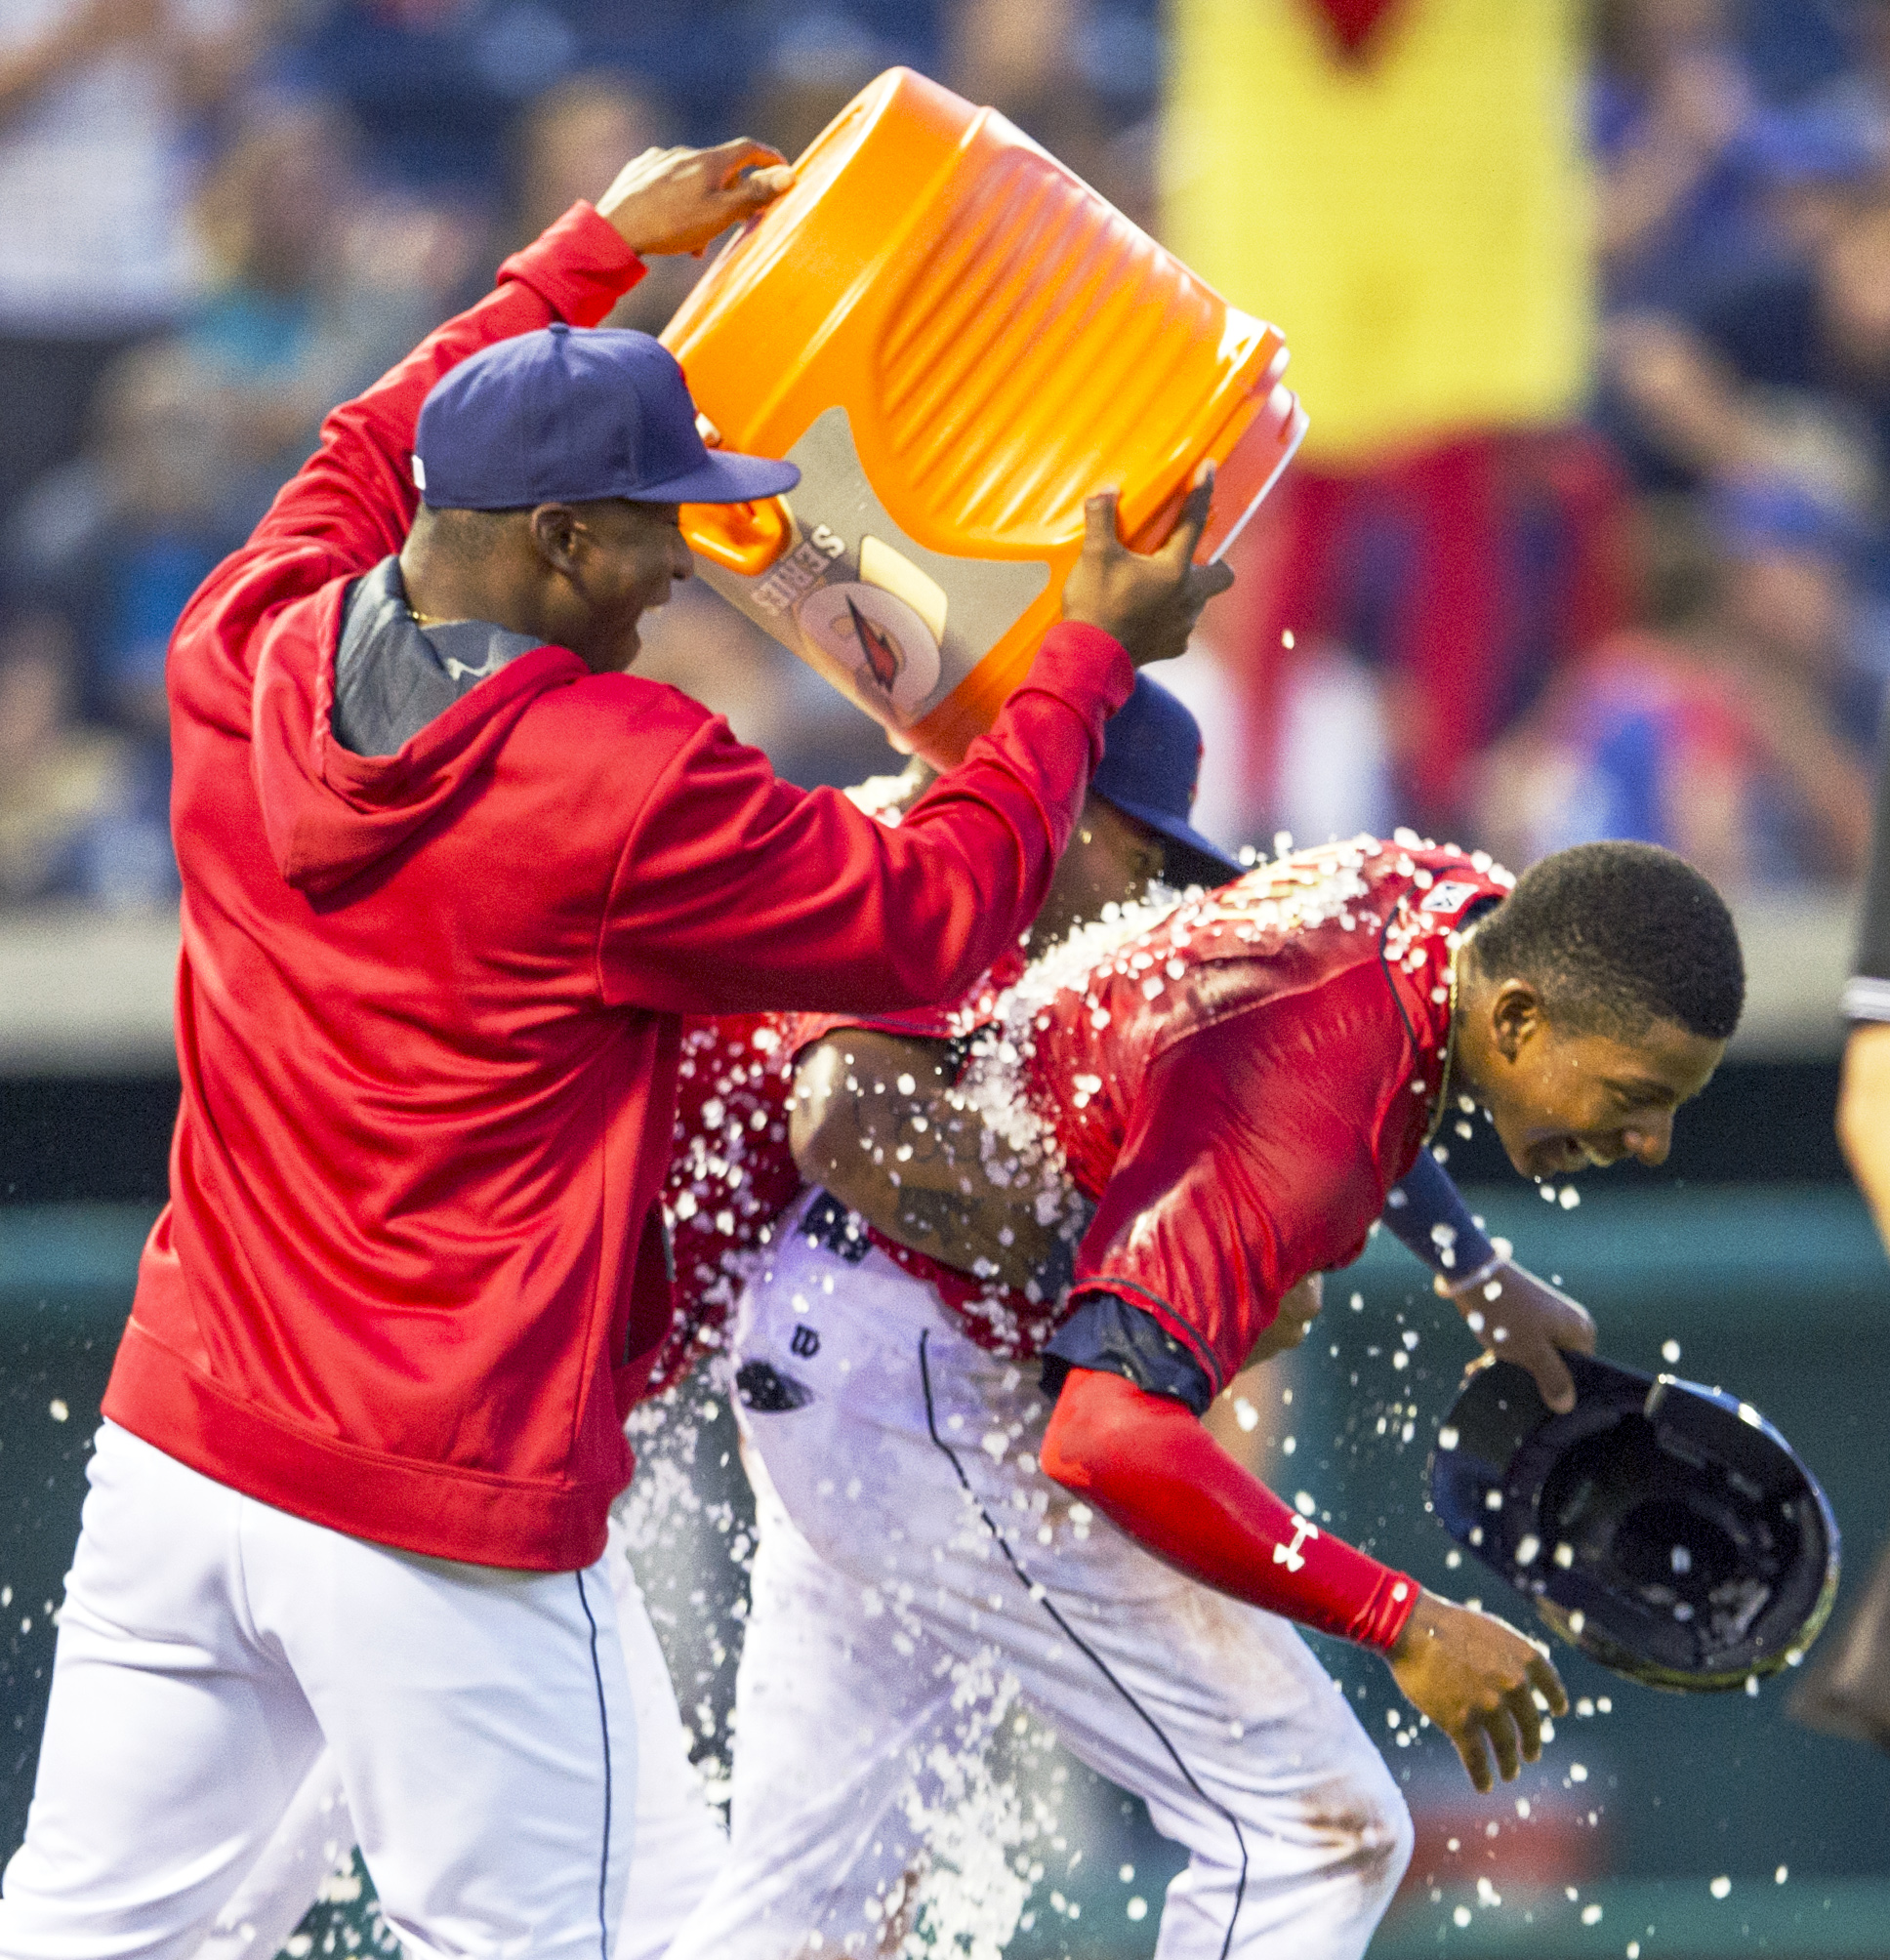 State College Spikes center fielder Anthony Ray is doused in ice water by teammates after scoring the the game winning run in the game against the Hudson Valley Renegades at Medlar Field on Sunday, June 19, 2016.